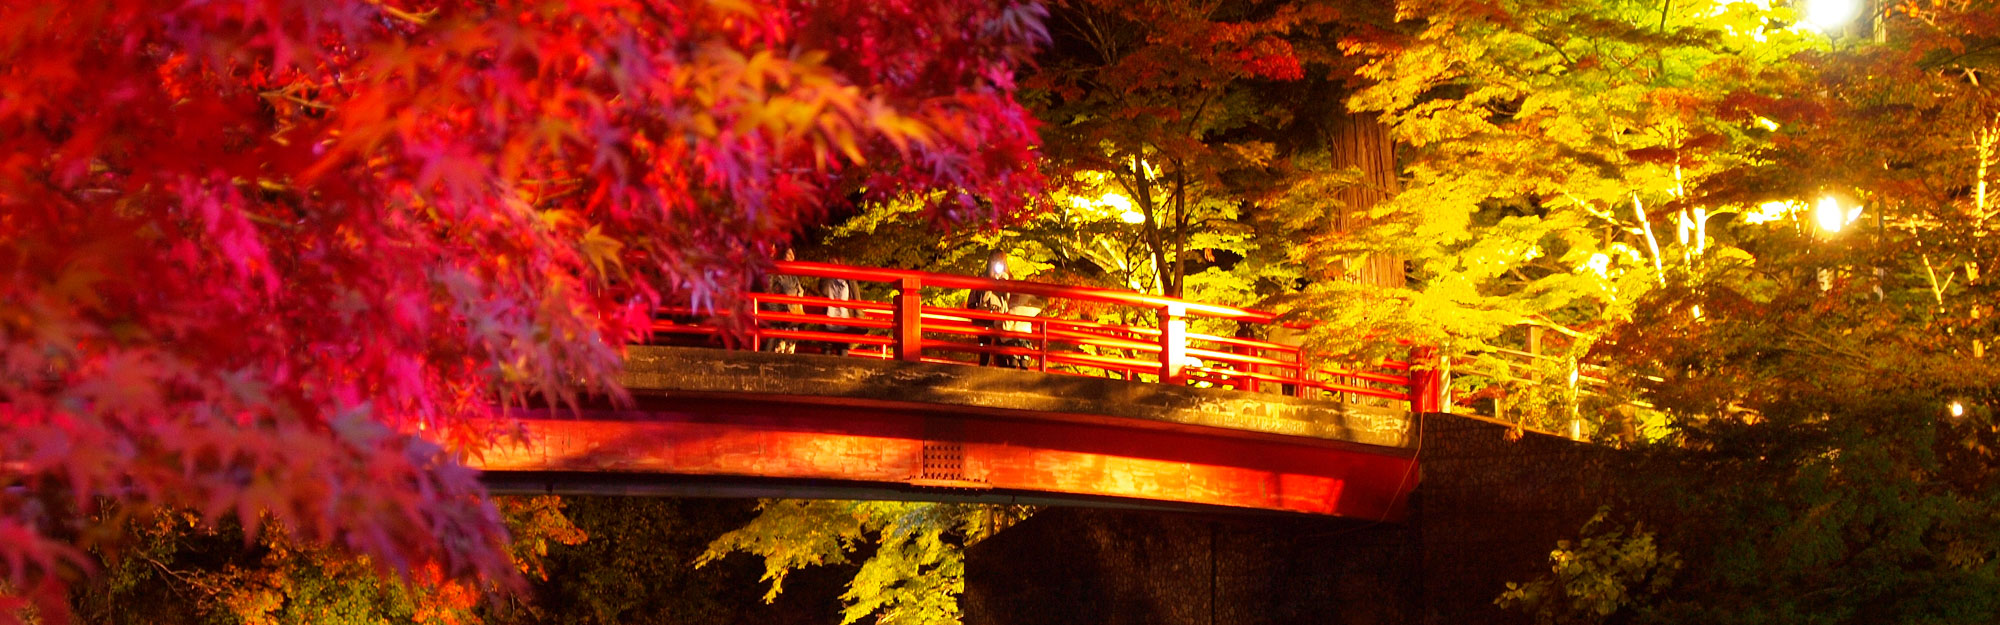 momiji night illumination